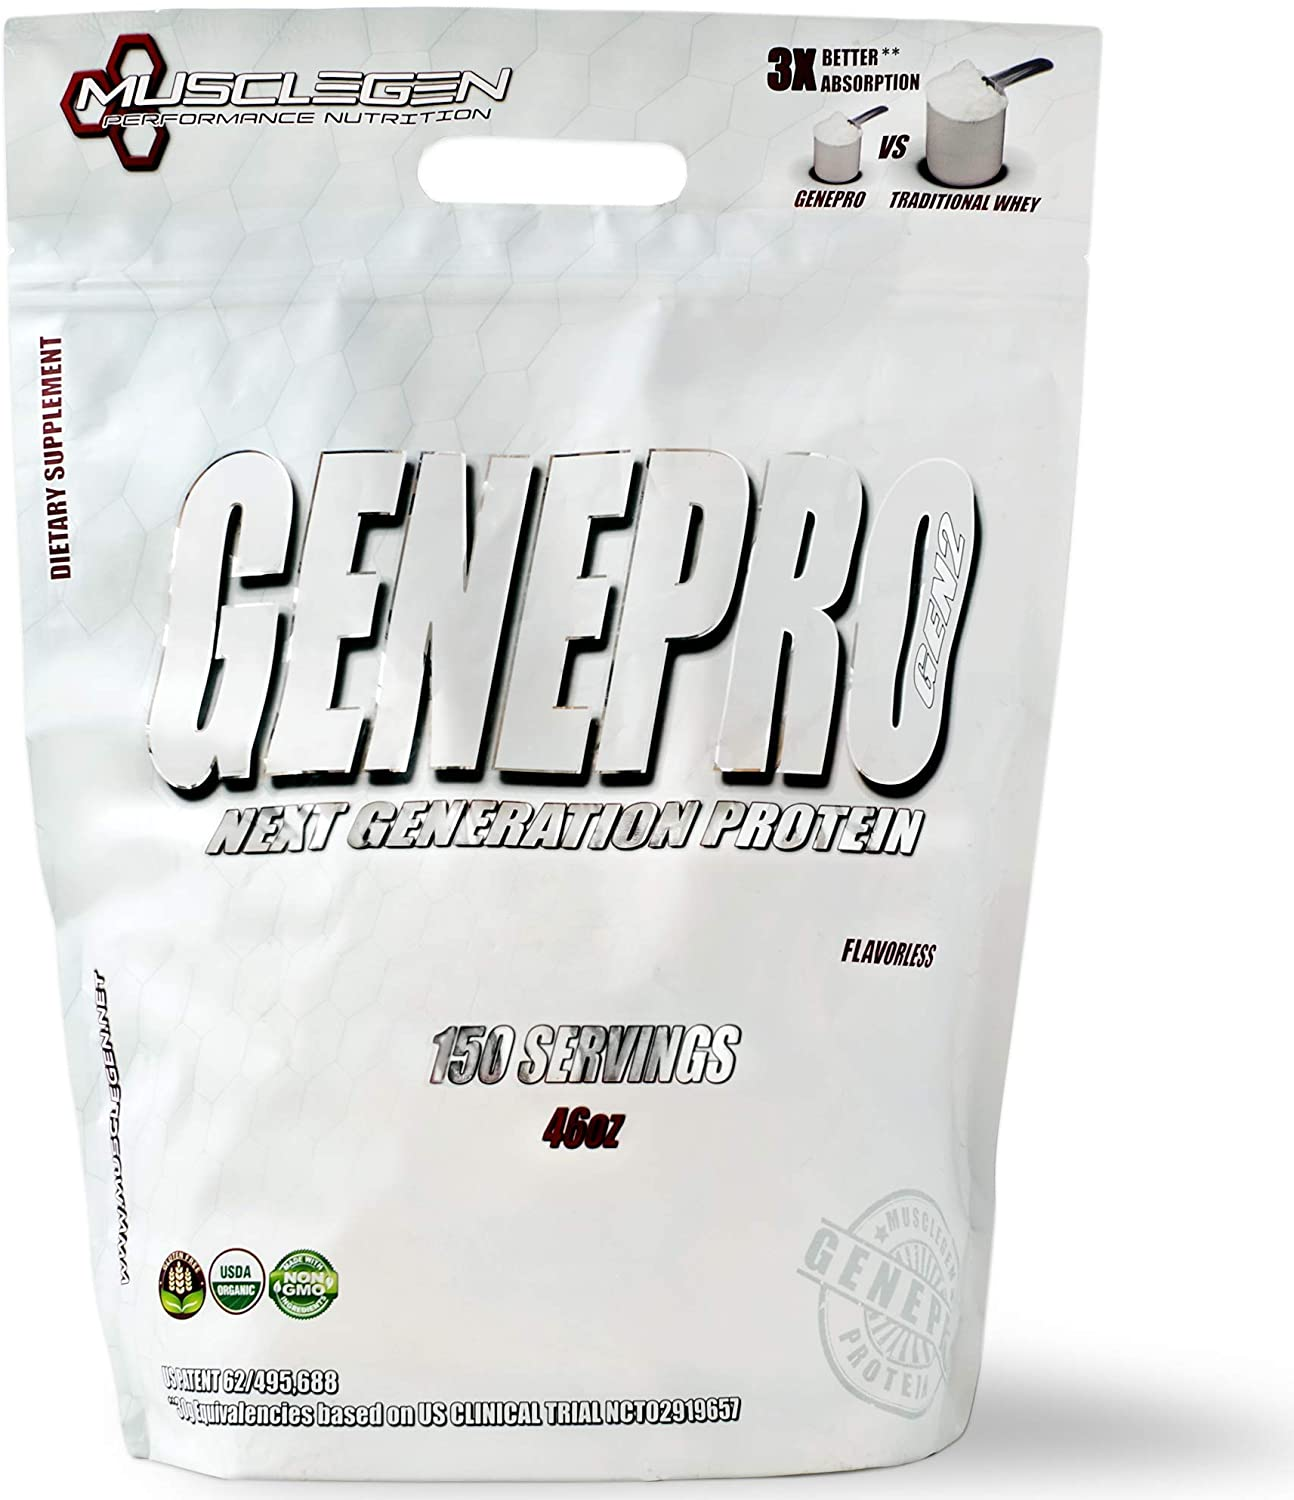 GENEPRO Protein: 150 Servings, Premium Protein for Absorption, Muscle Growth and Mix-Ability